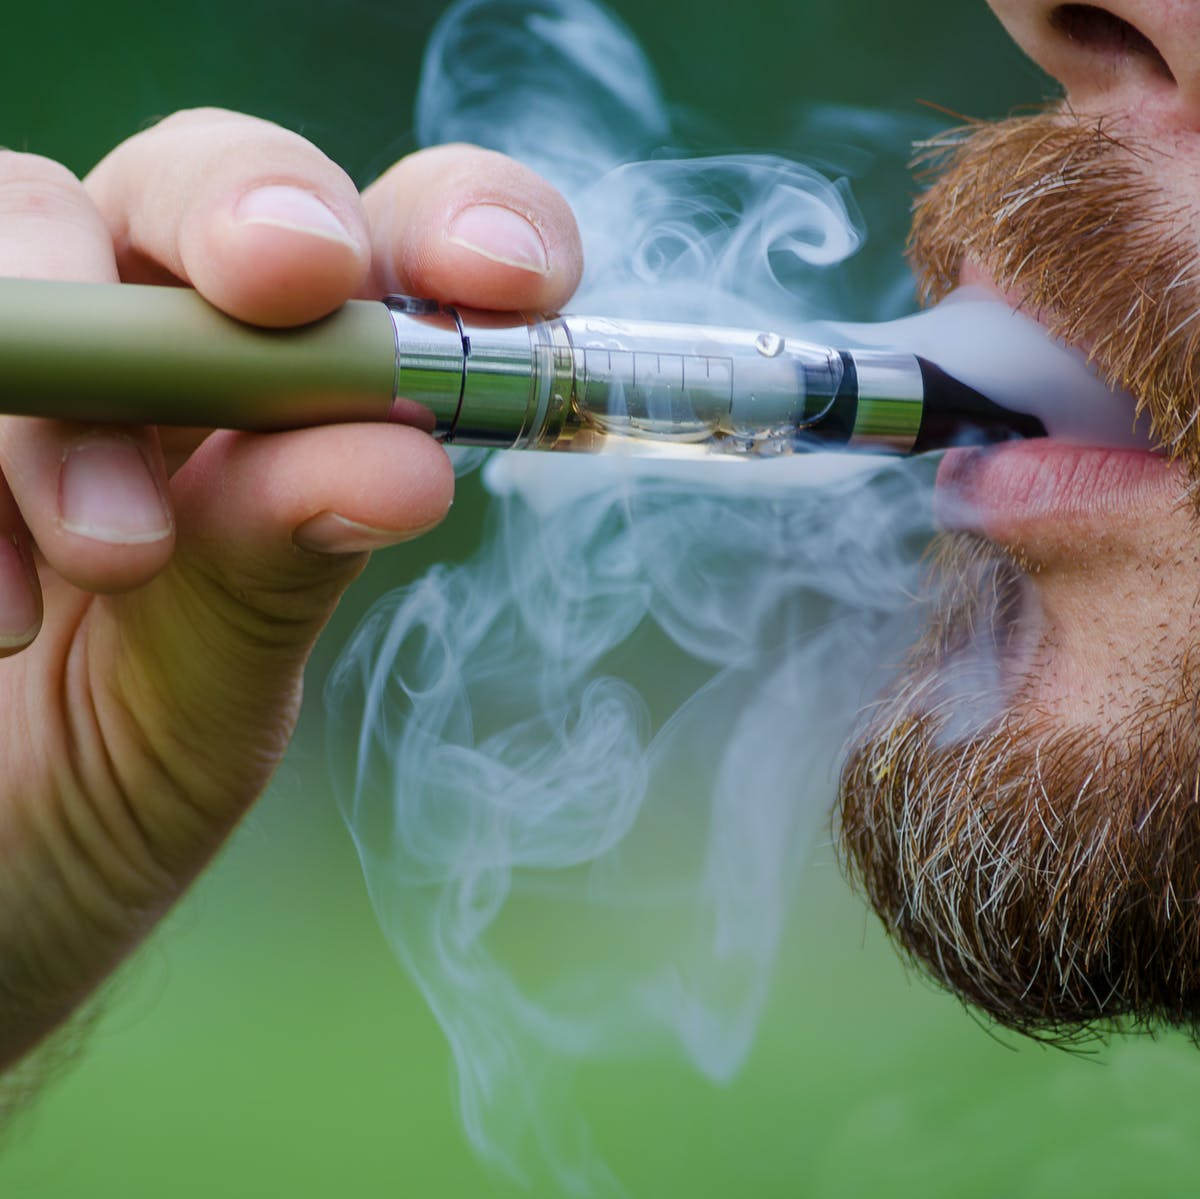 Vaping may have closer ties to cancer than people thought